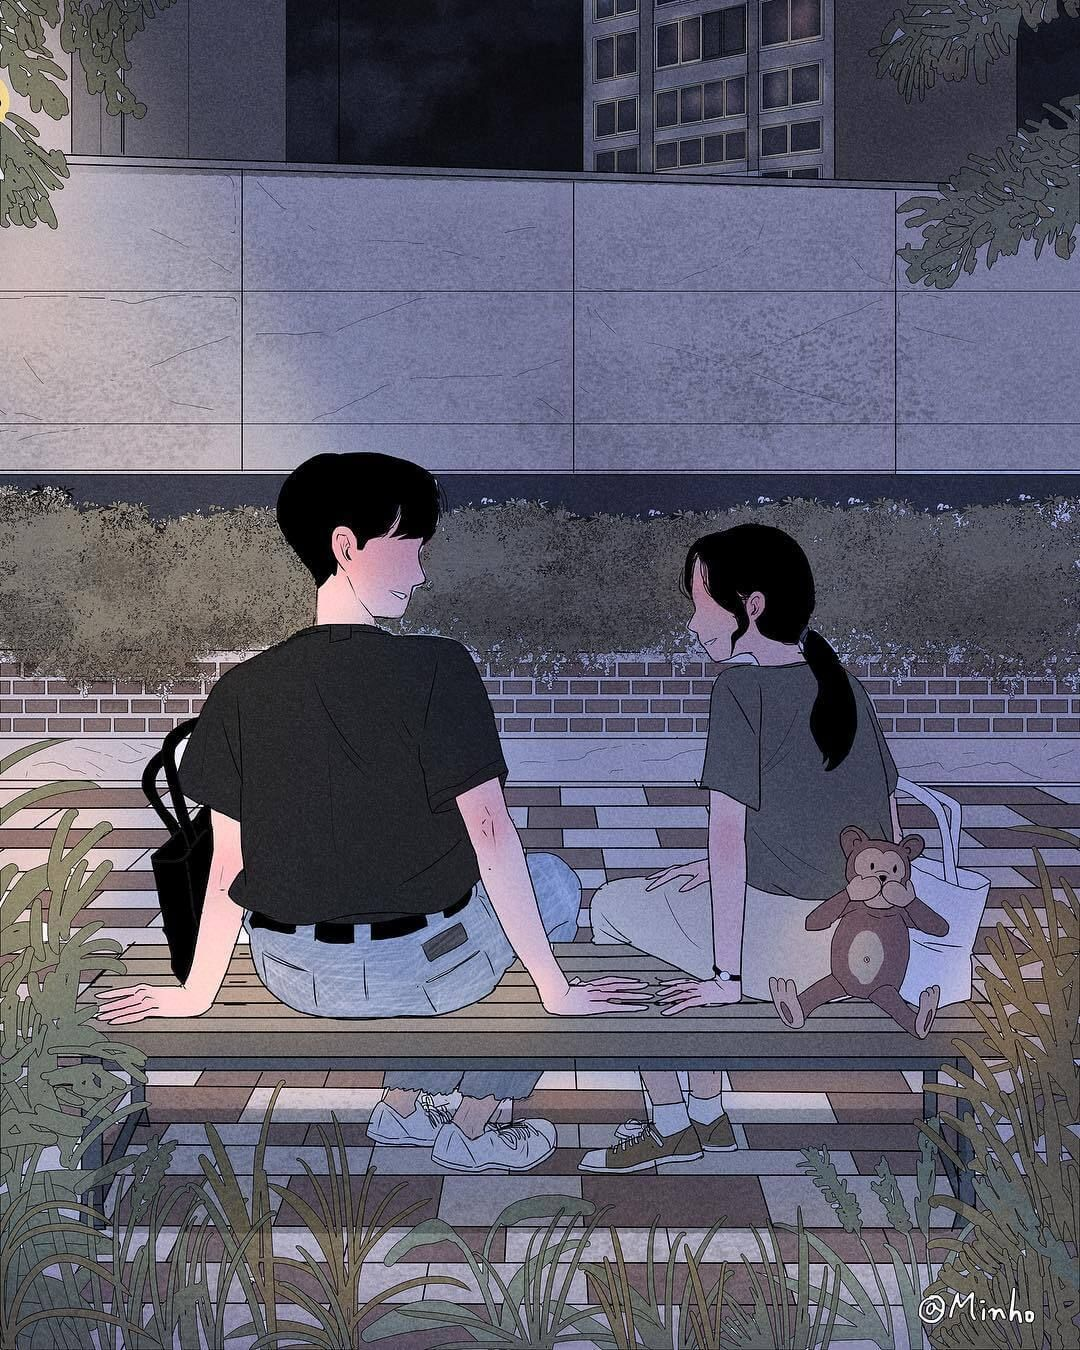 Heart Warming Illustrations Depict The Romantic Moments Of A Happy